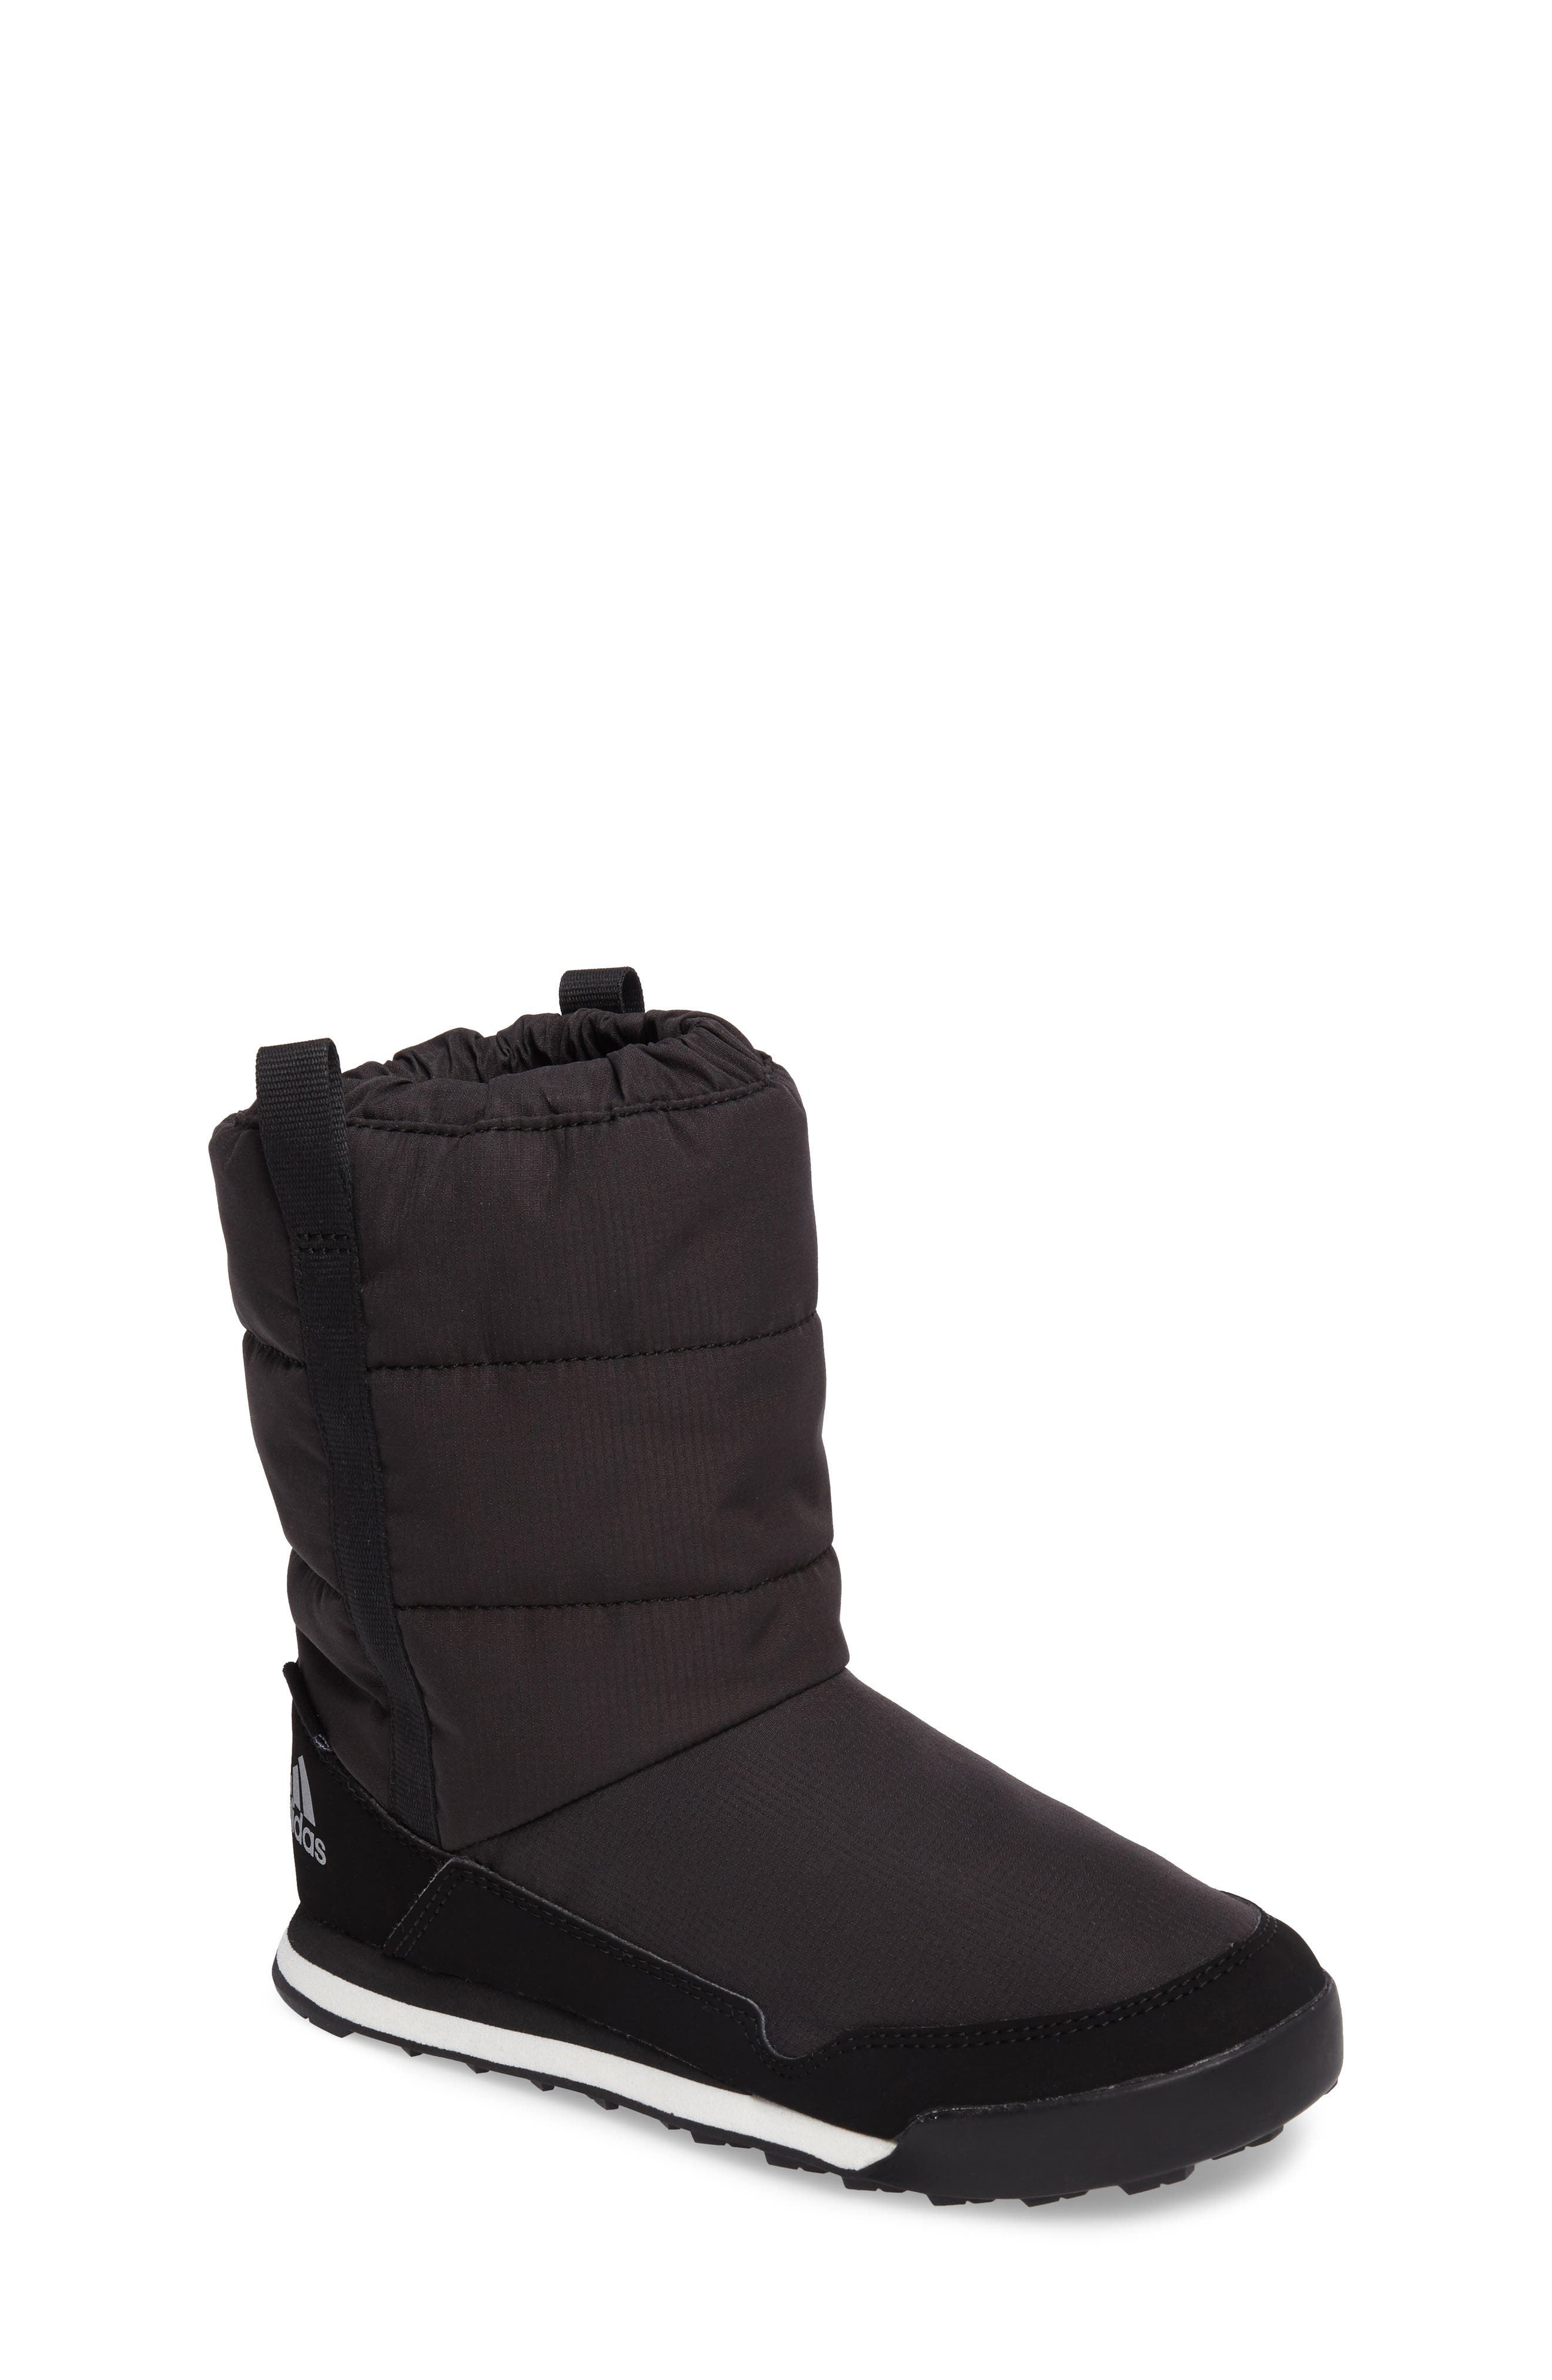 CW Snowpitch Insulated Waterproof Boot,                         Main,                         color, BLACK/ BLACK/ CHALK WHITE